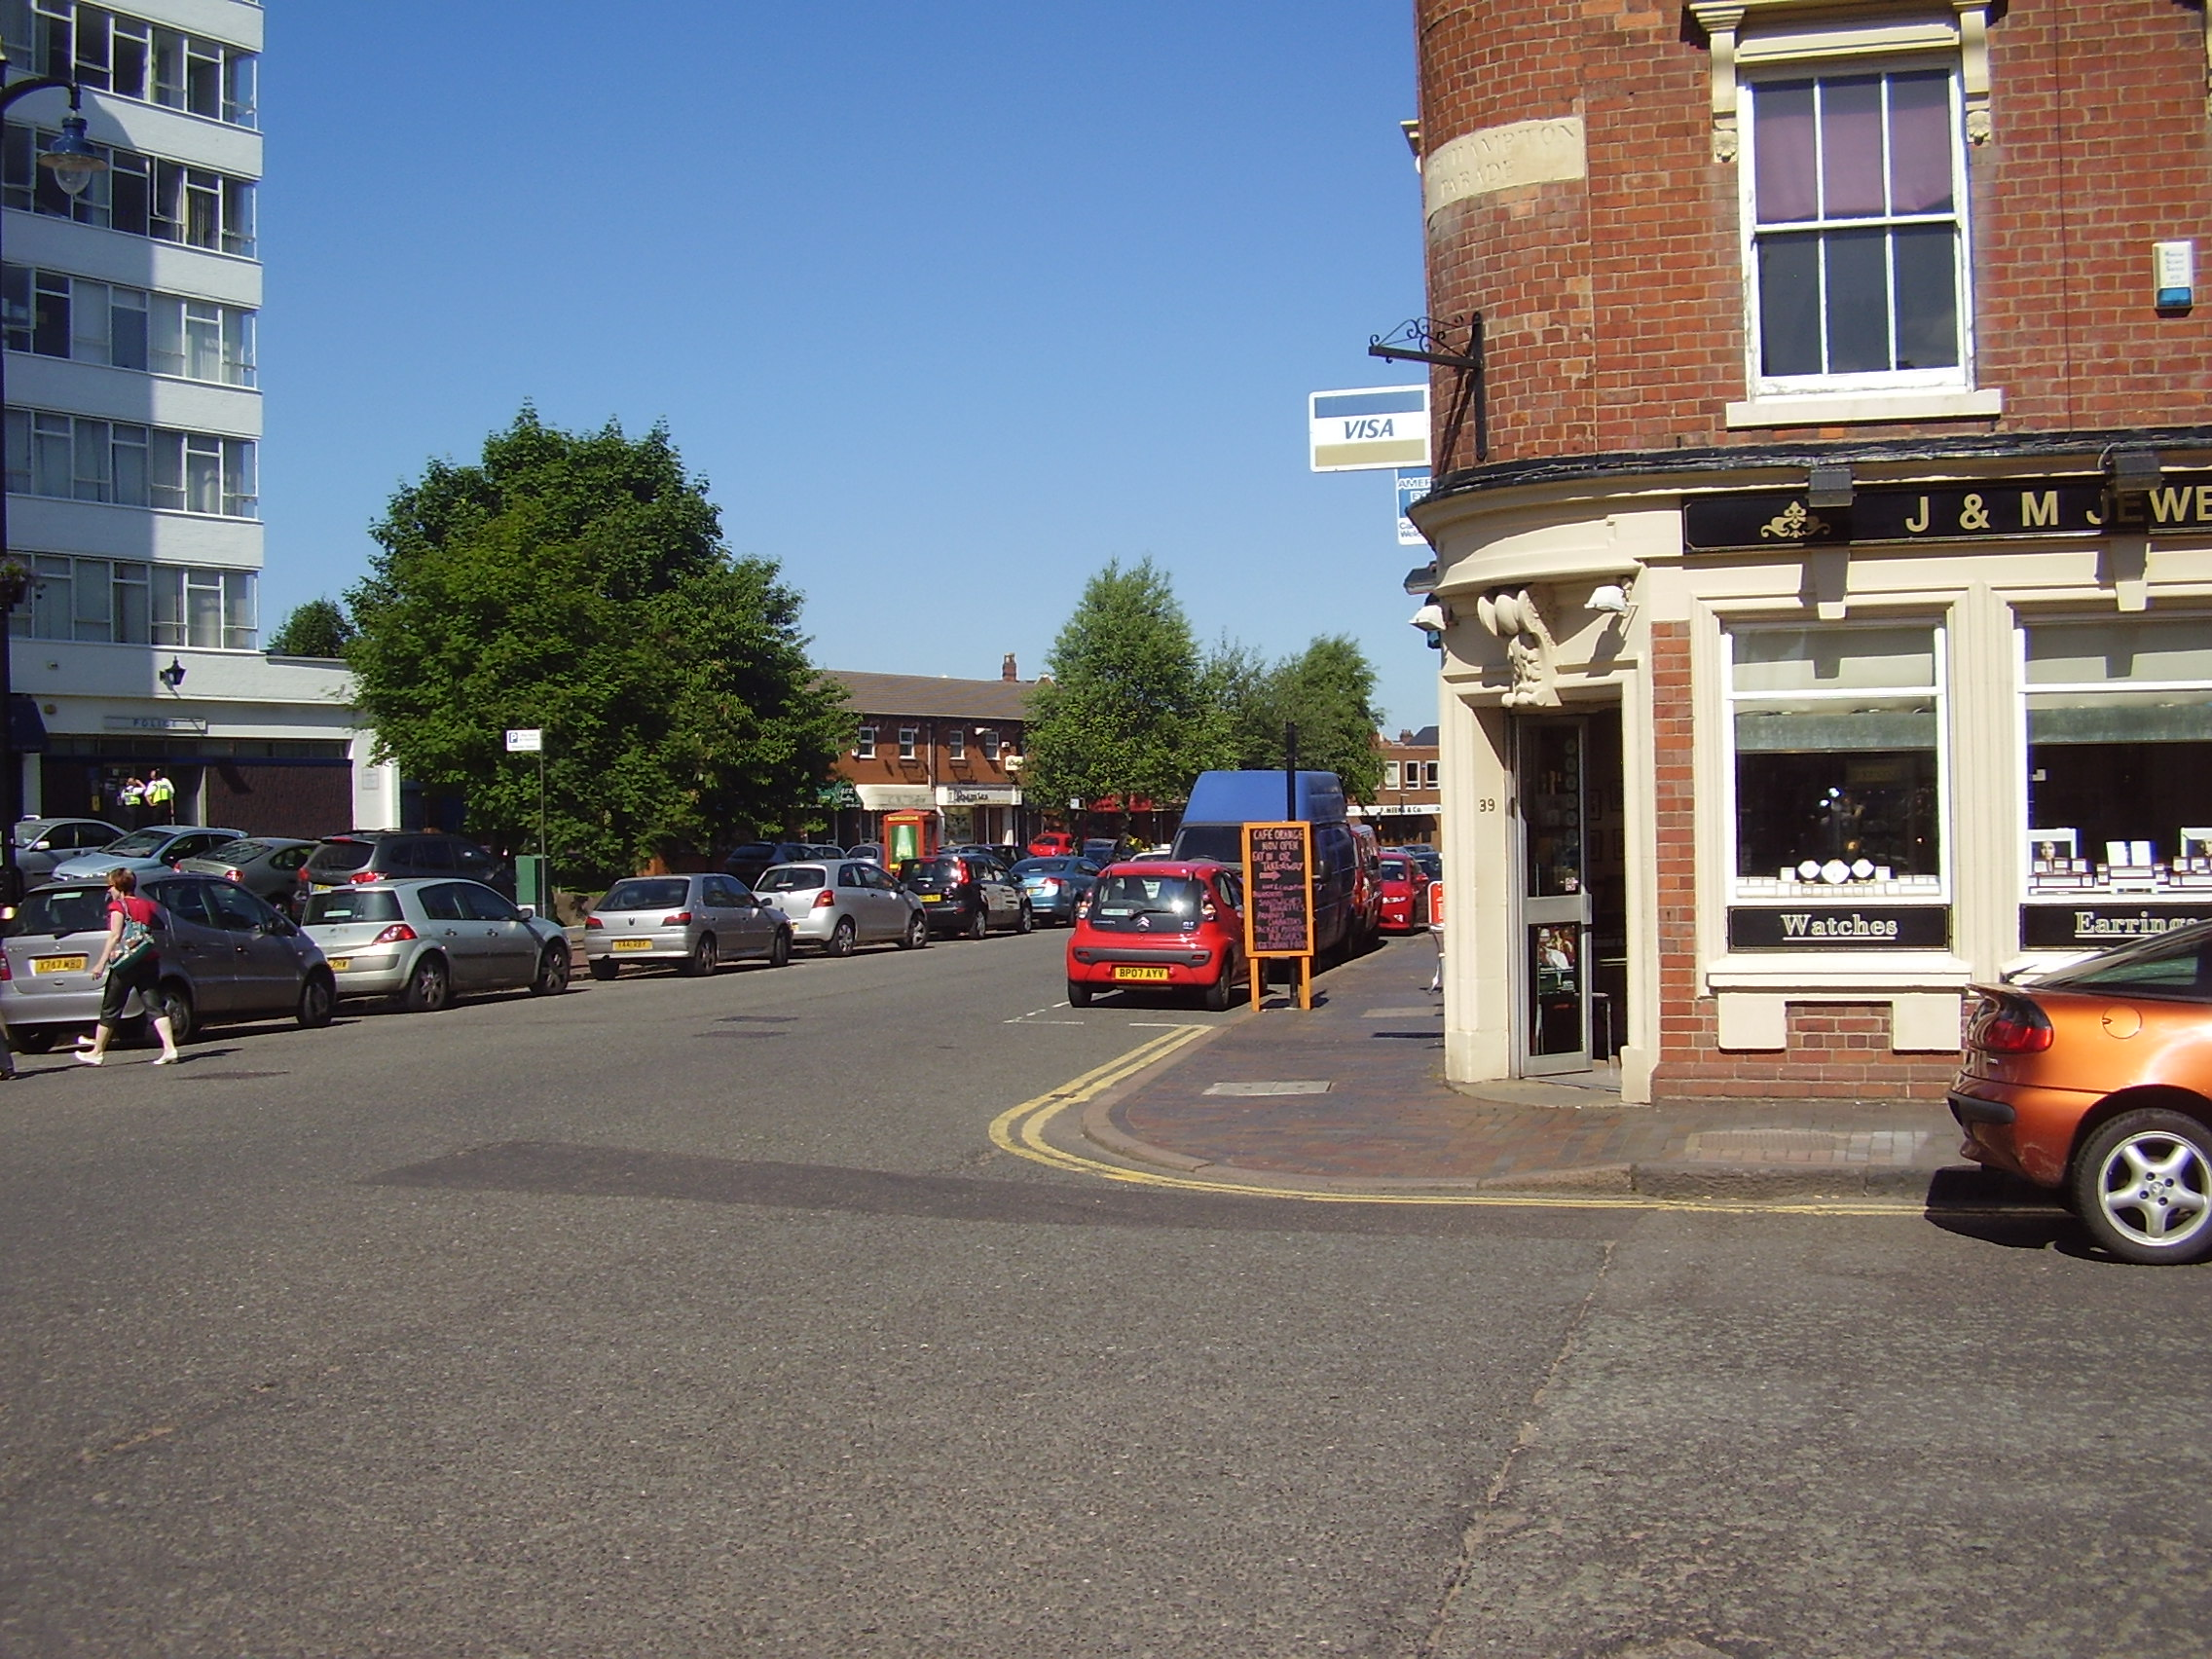 2008 Street view of the Jewellery Quarter in Birmingham 2